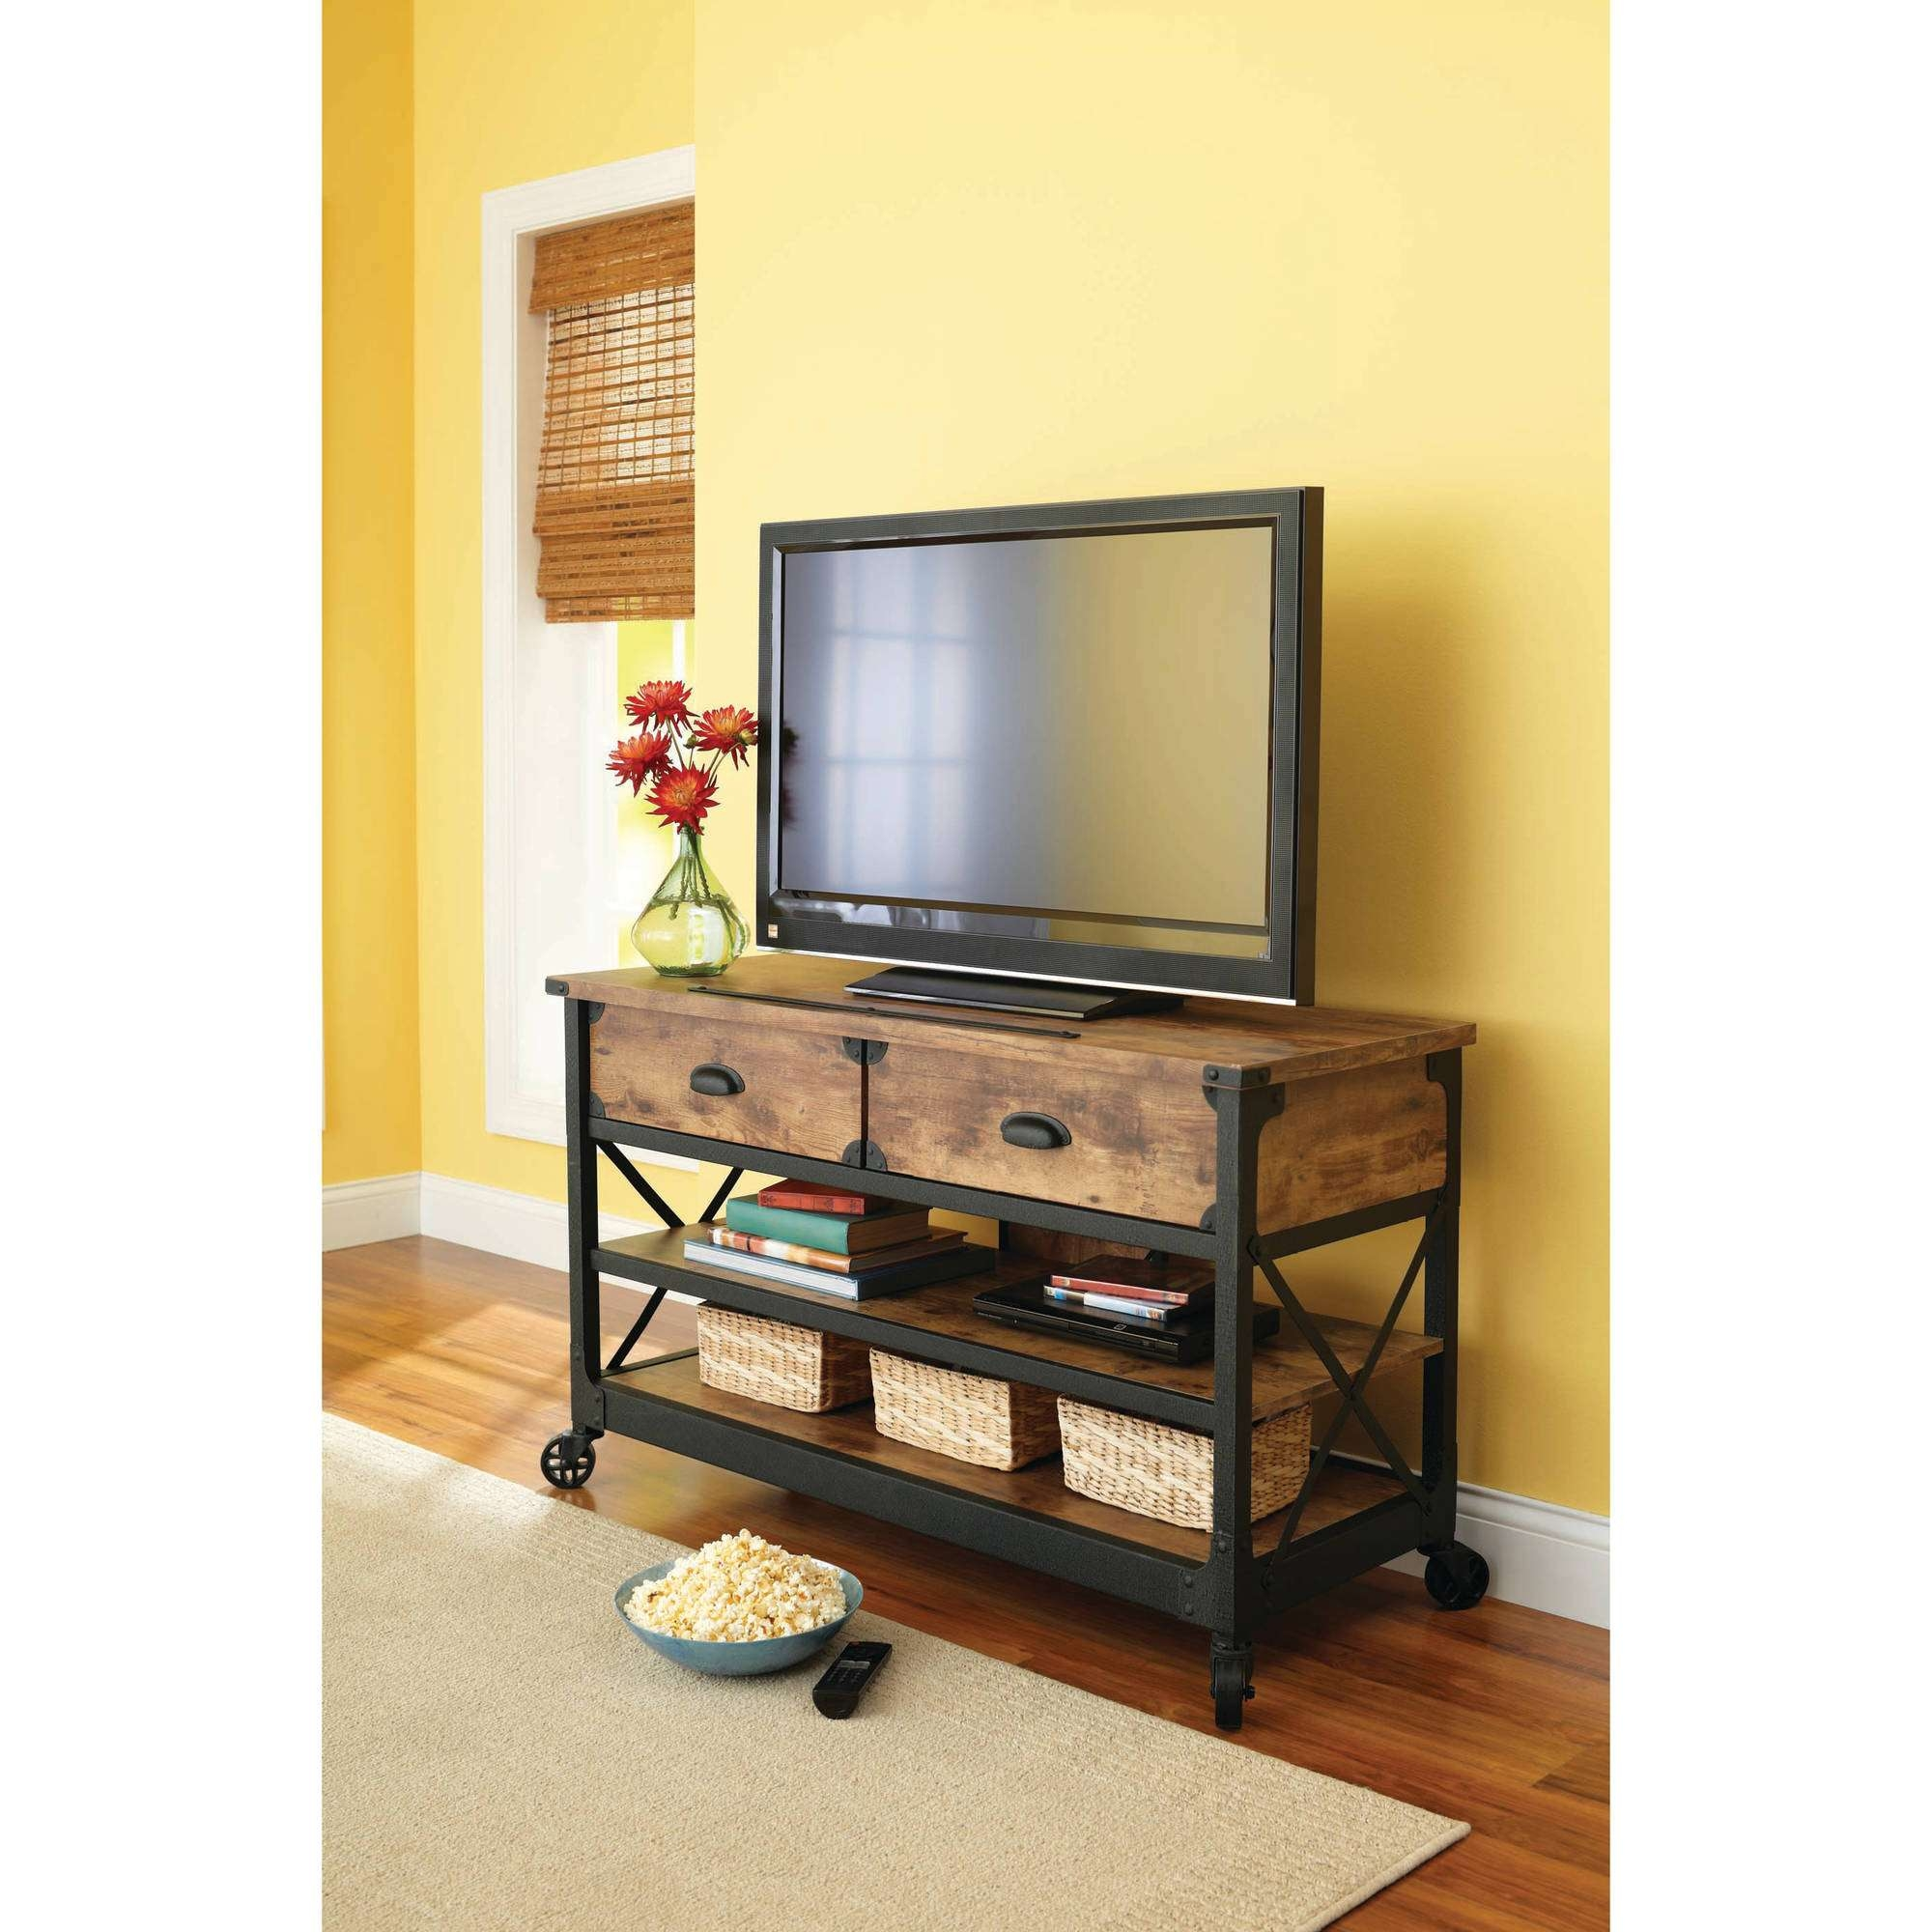 Better Homes And Gardens Rustic Country Living Room Set – Walmart With Tv Stands With Baskets (View 15 of 15)